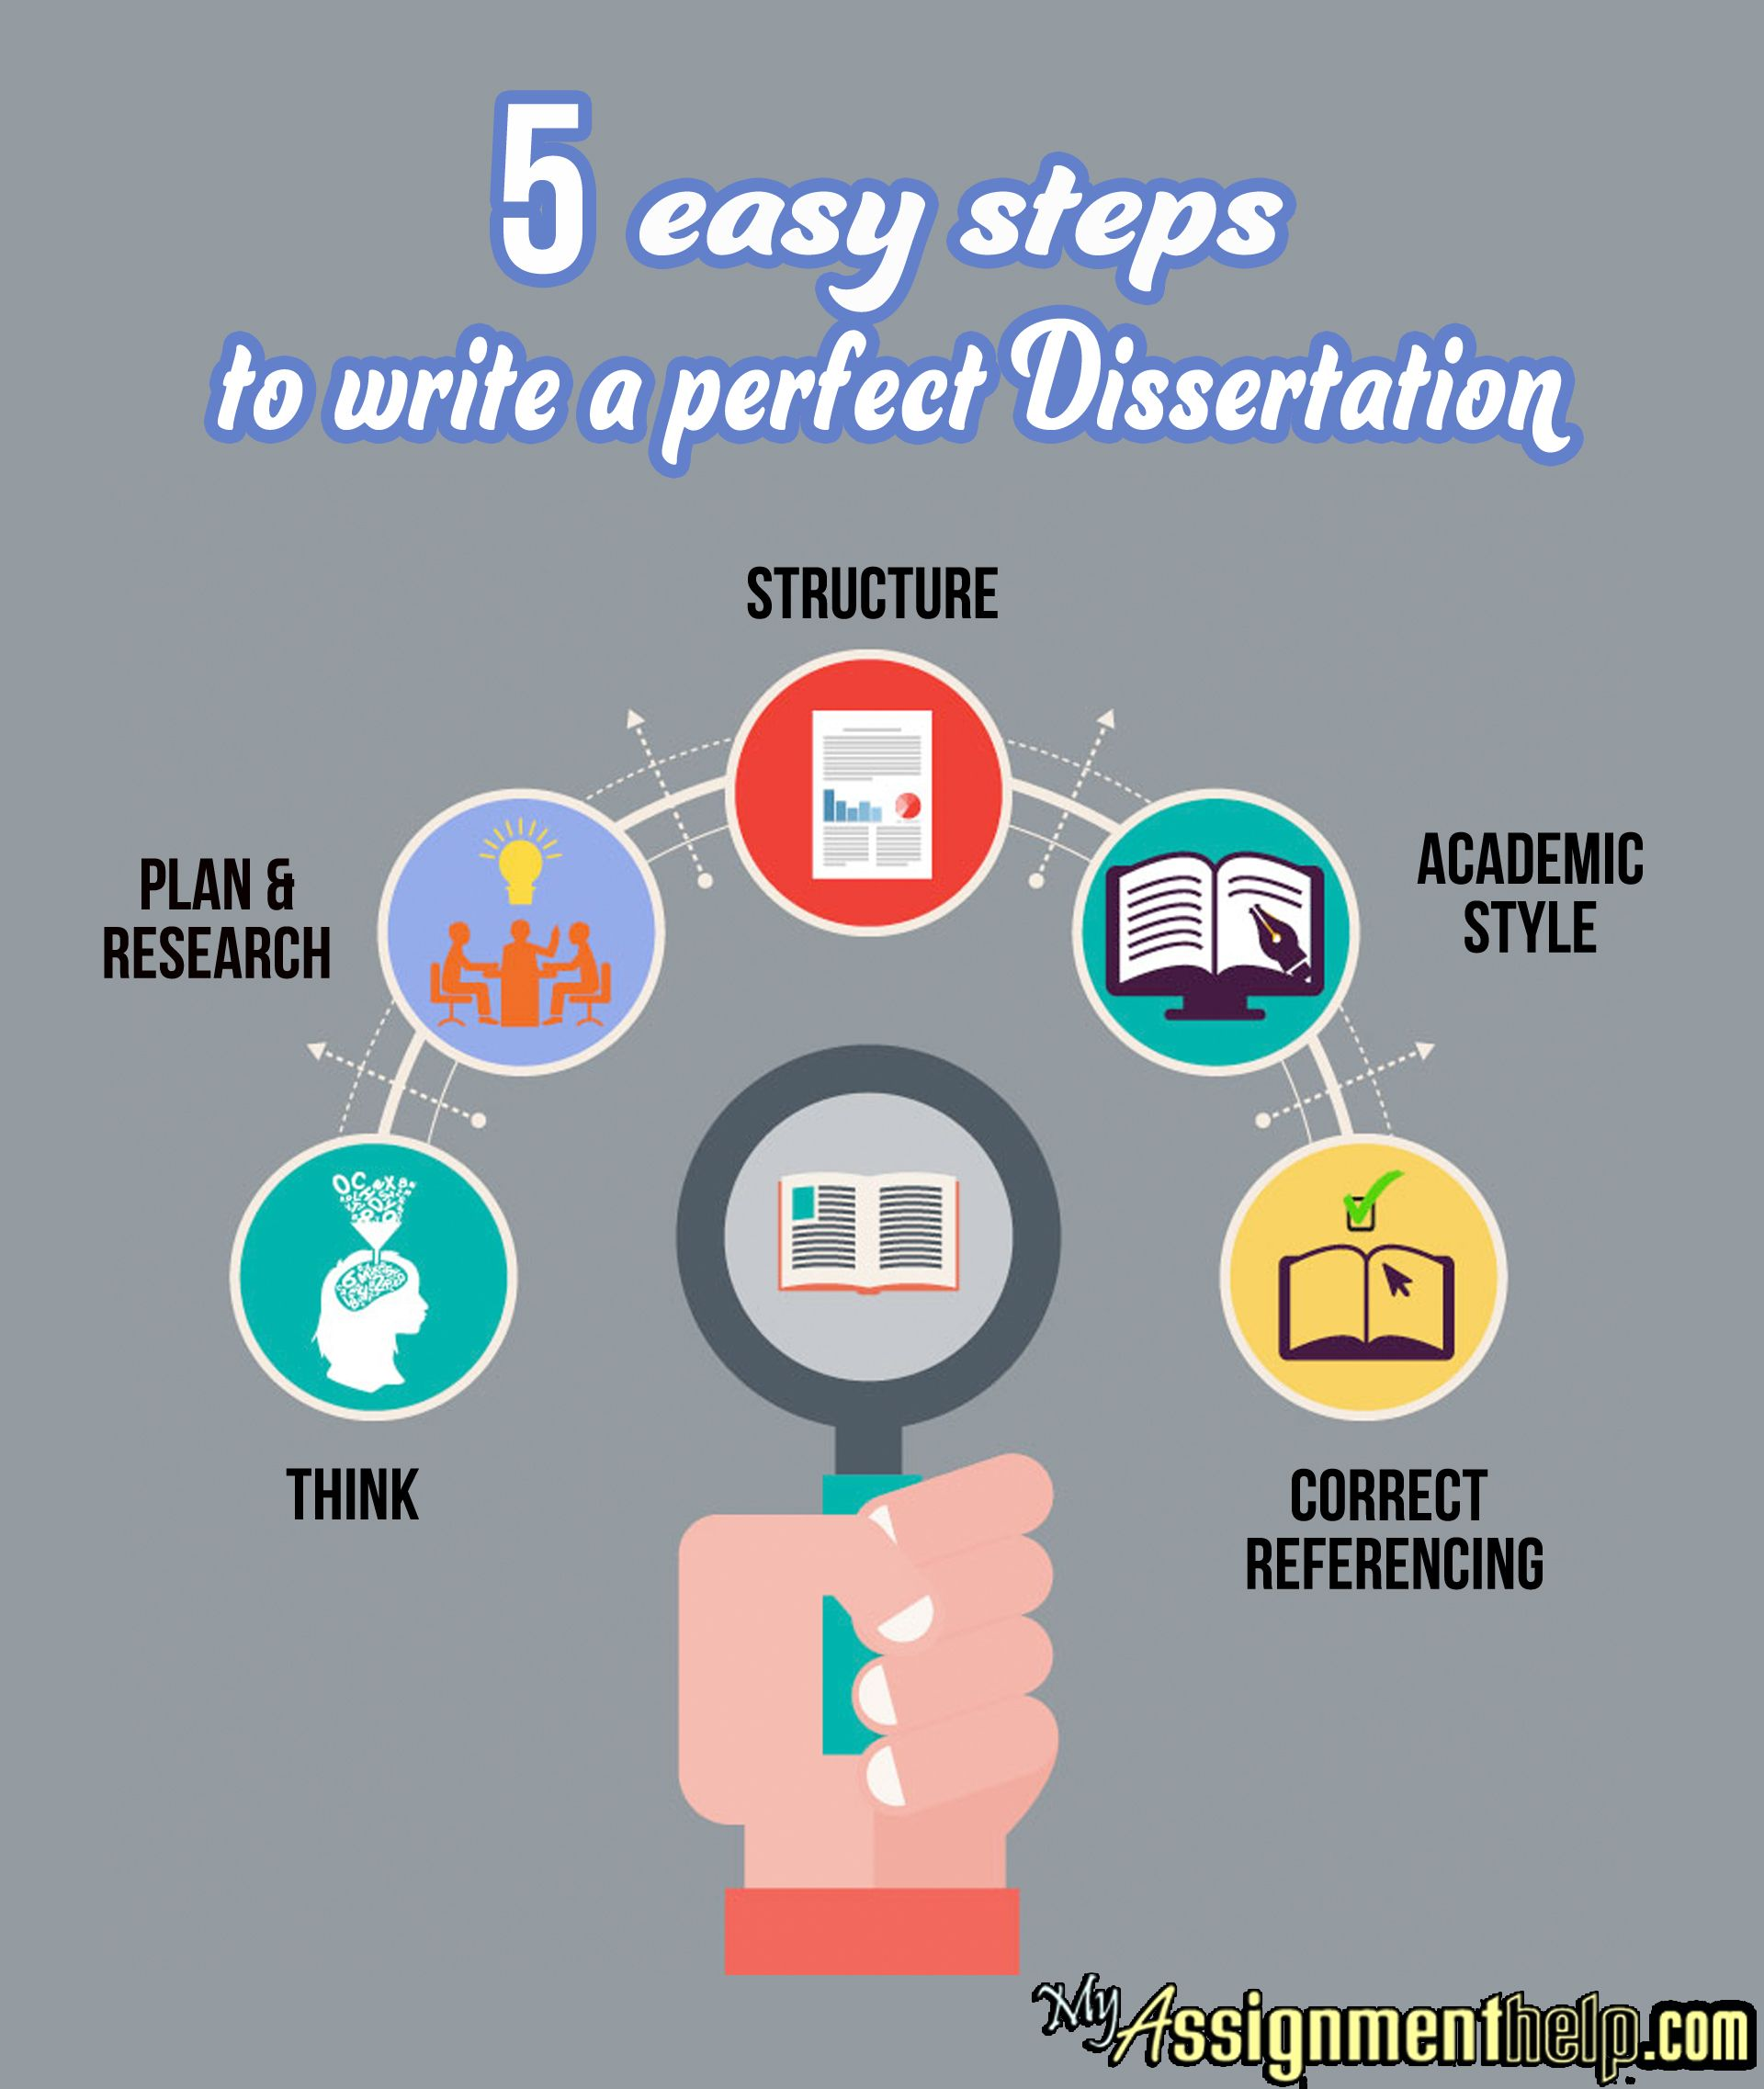 dissertation writings the academic papers uk is providing cheap  the academic papers uk is providing cheap dissertation writing services essay writing services and all academic writing services in uk to ensure your